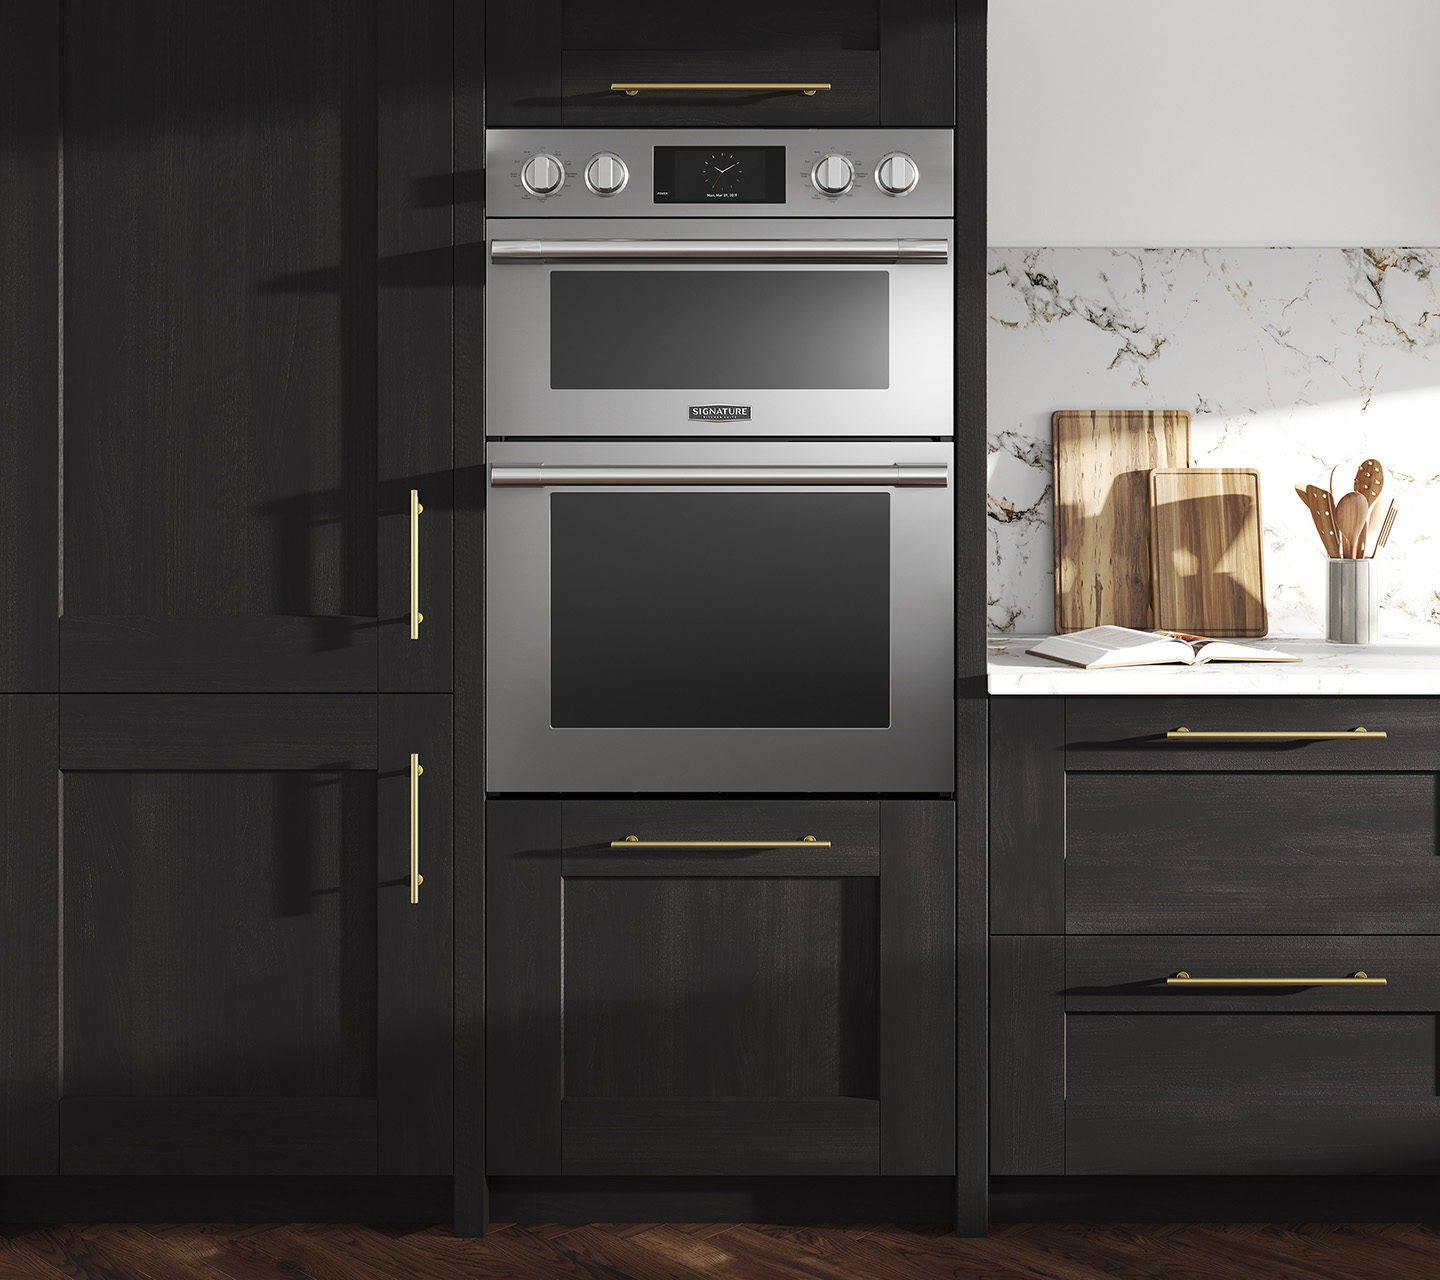 Signature Kitchen Suite 30 inch wall oven